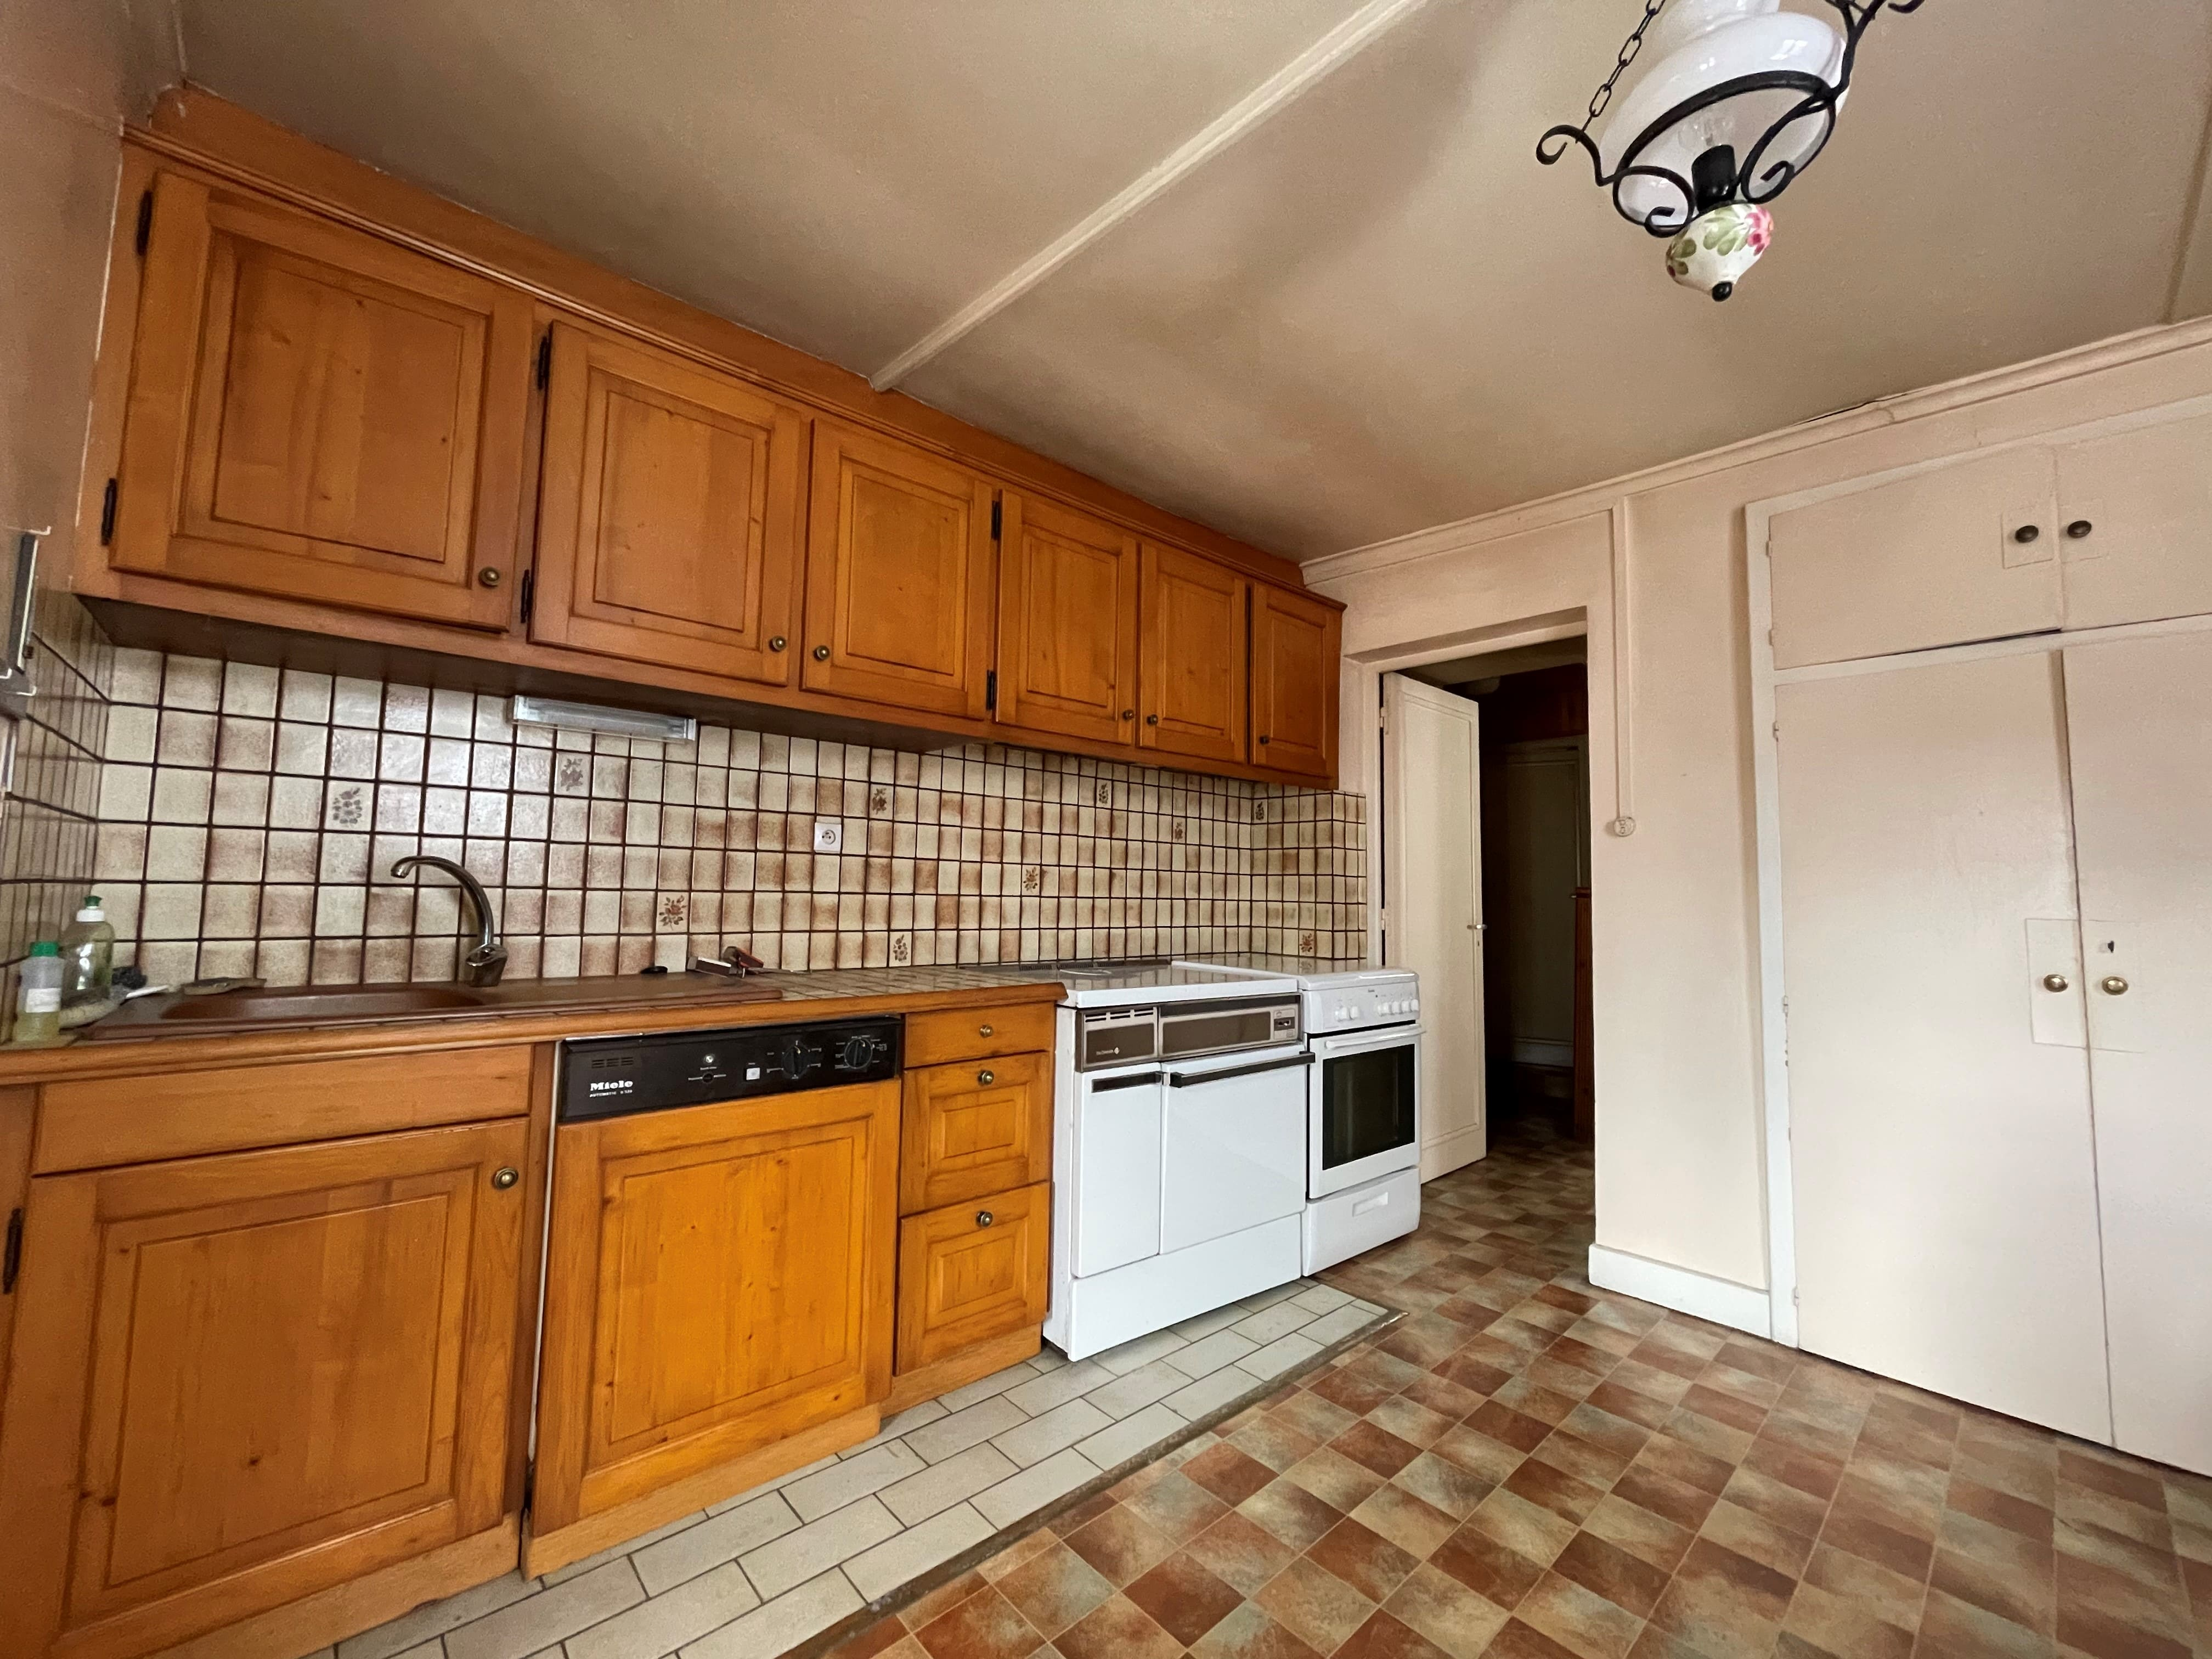 4-room house 120 m² with garden